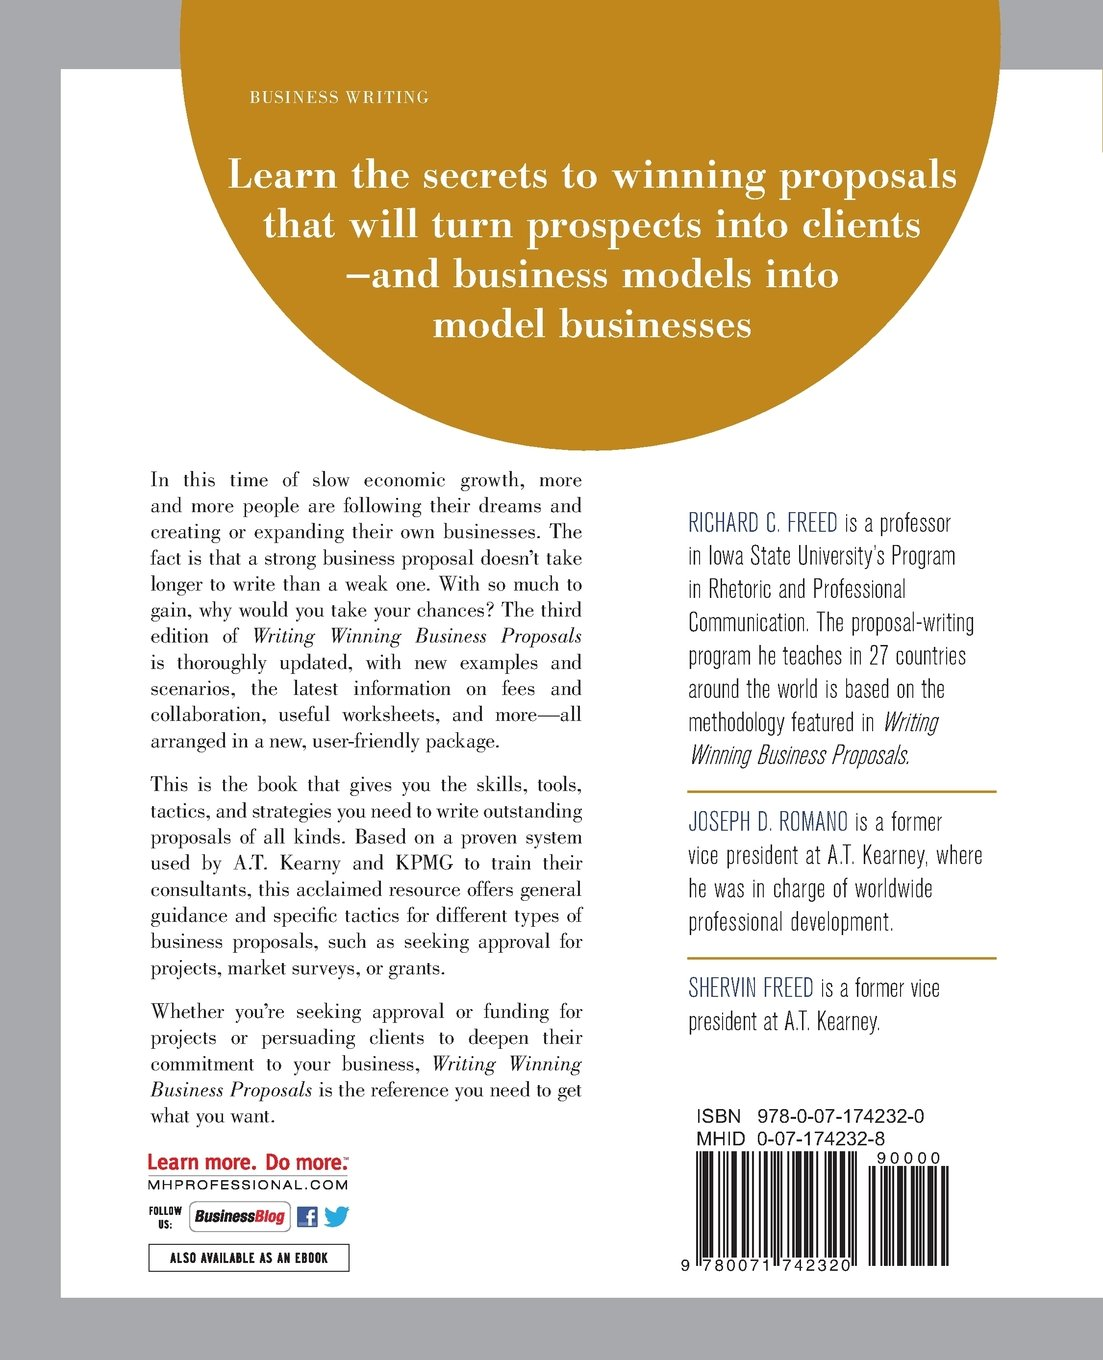 Writing winning business proposals third edition richard c freed writing winning business proposals third edition richard c freed shervin freed joe romano 9780071742320 amazon books fandeluxe Images